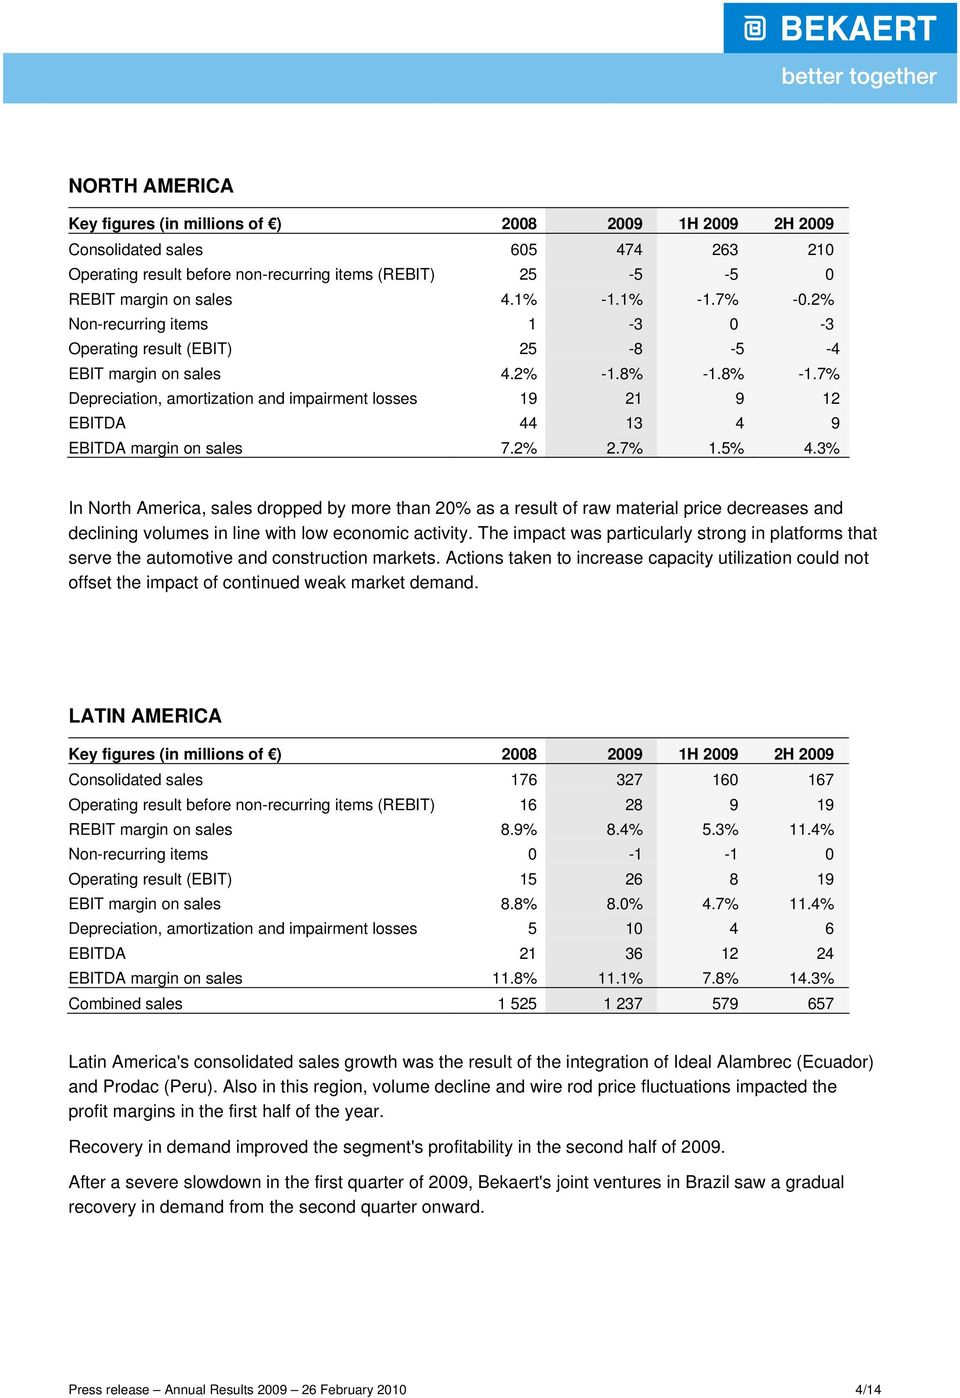 7% Depreciation, amortization and impairment losses 19 21 9 12 EBITDA 44 13 4 9 EBITDA margin on sales 7.2% 2.7% 1.5% 4.